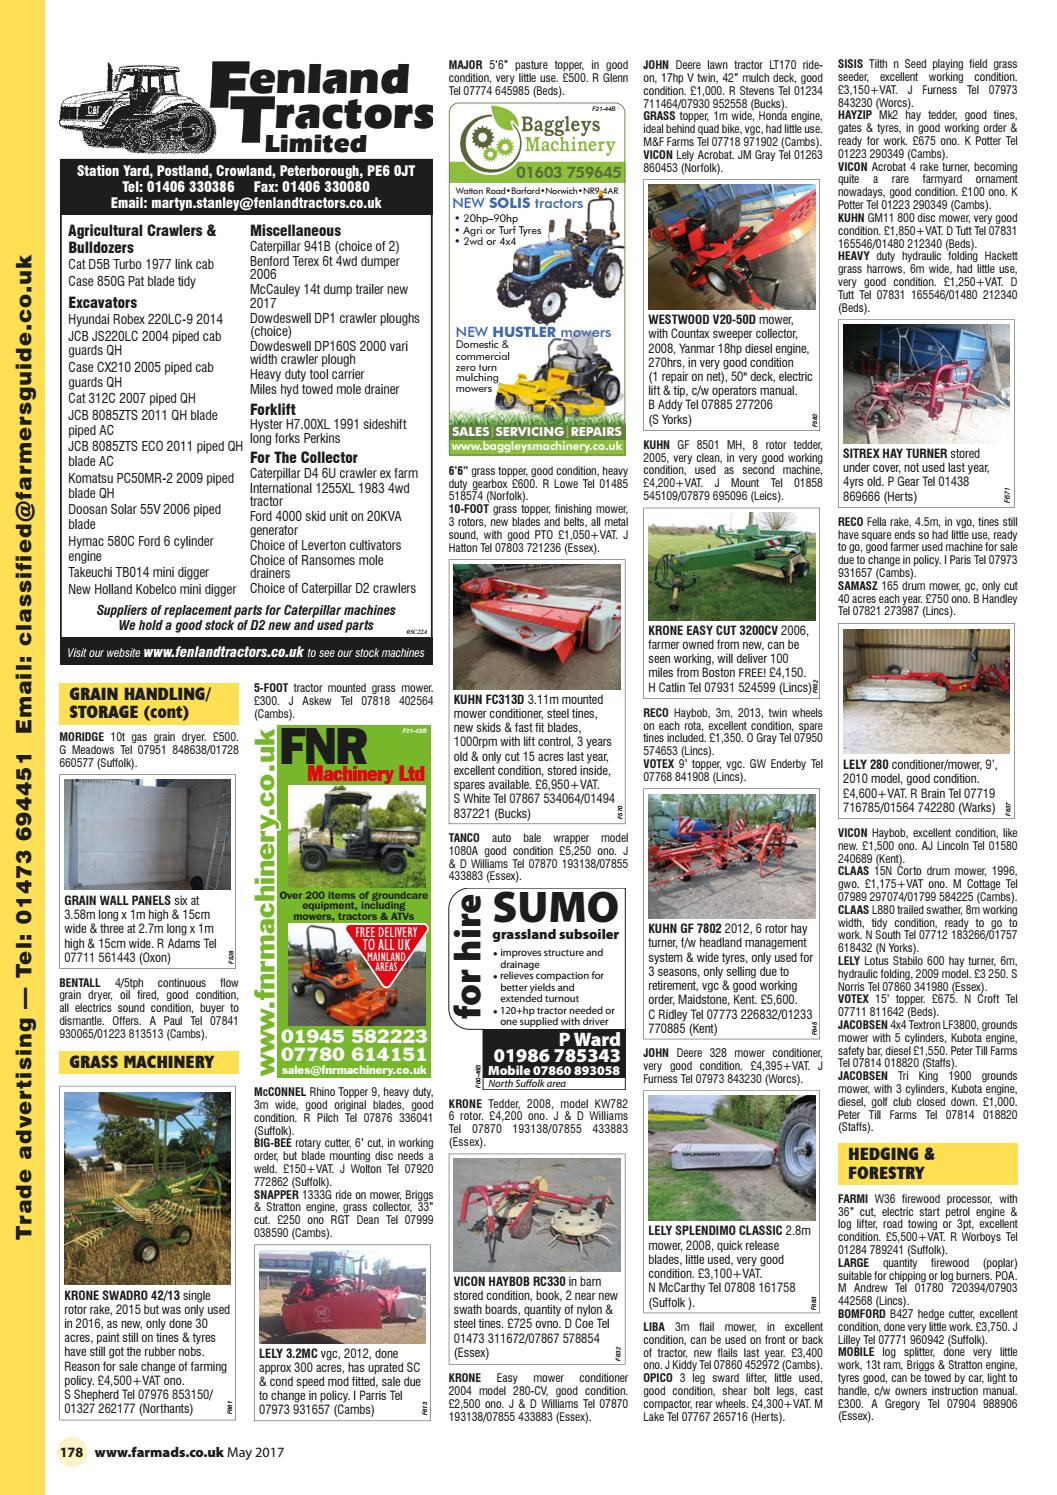 Farmers Guide May 2017 by Farmers Guide - issuu